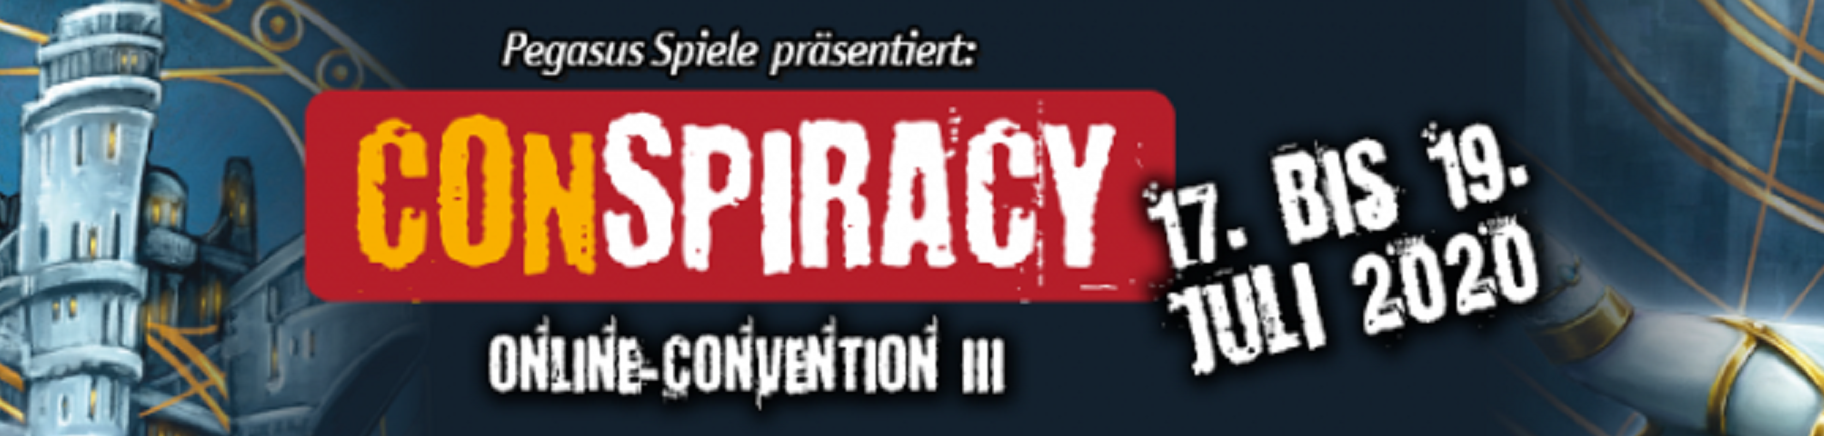 Online-Convention: CONspiracy 3